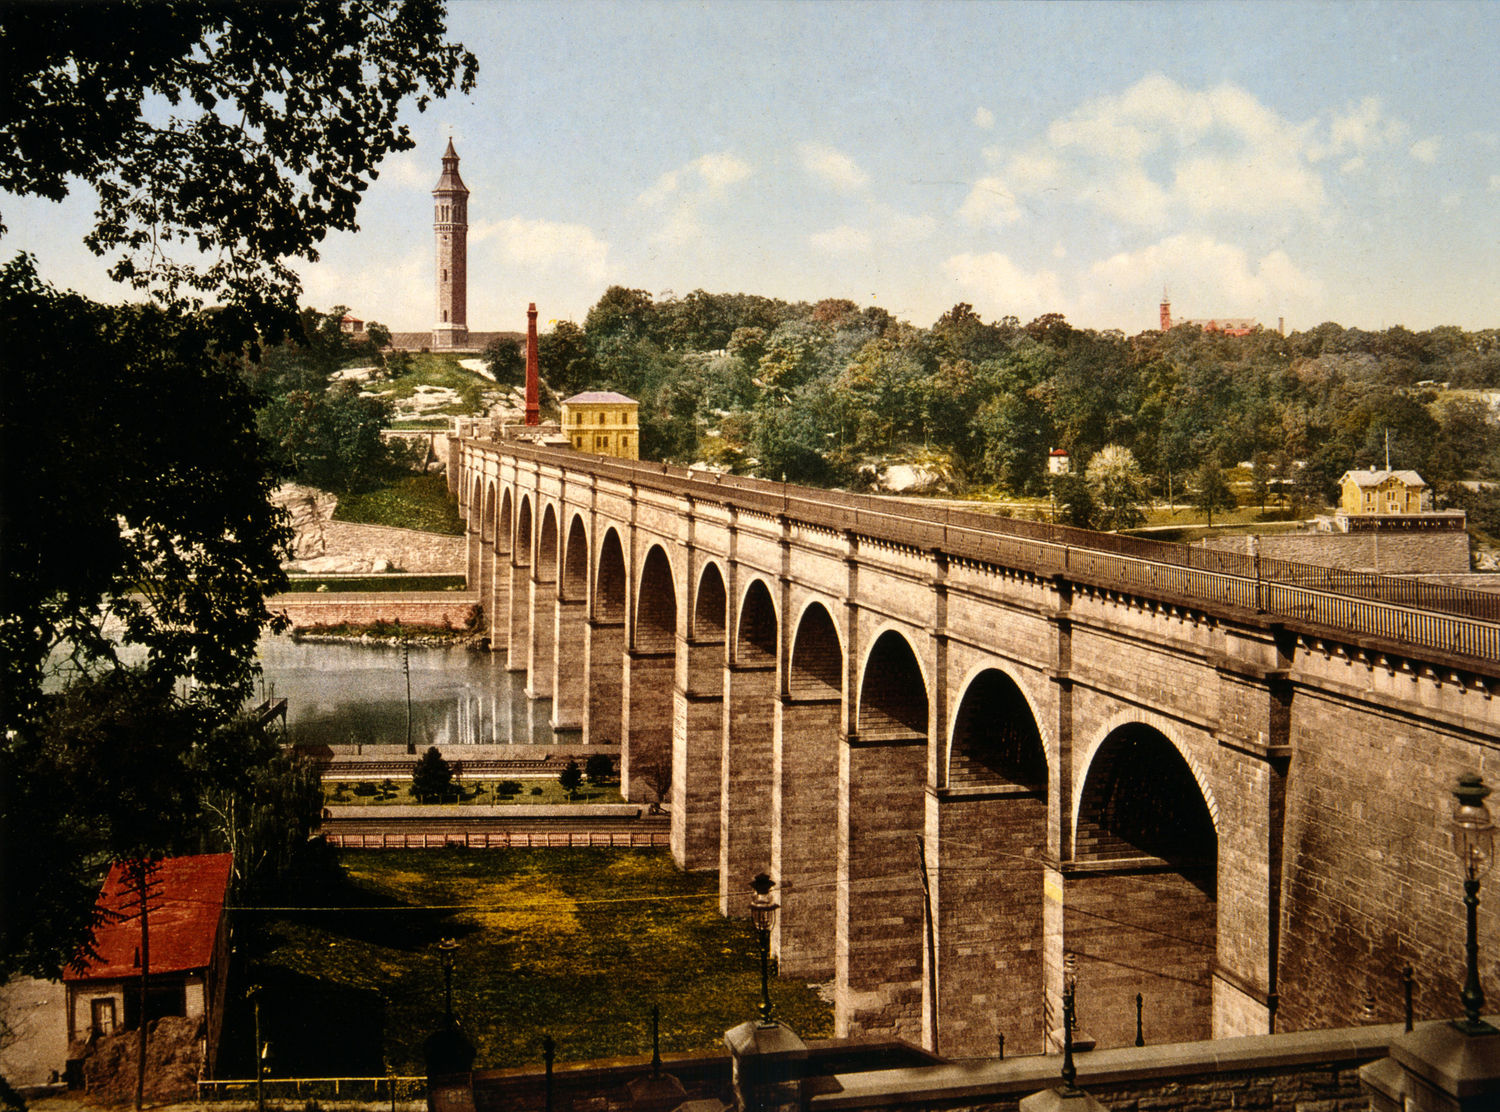 High Bridge: A print from 1900, showing original stone arches